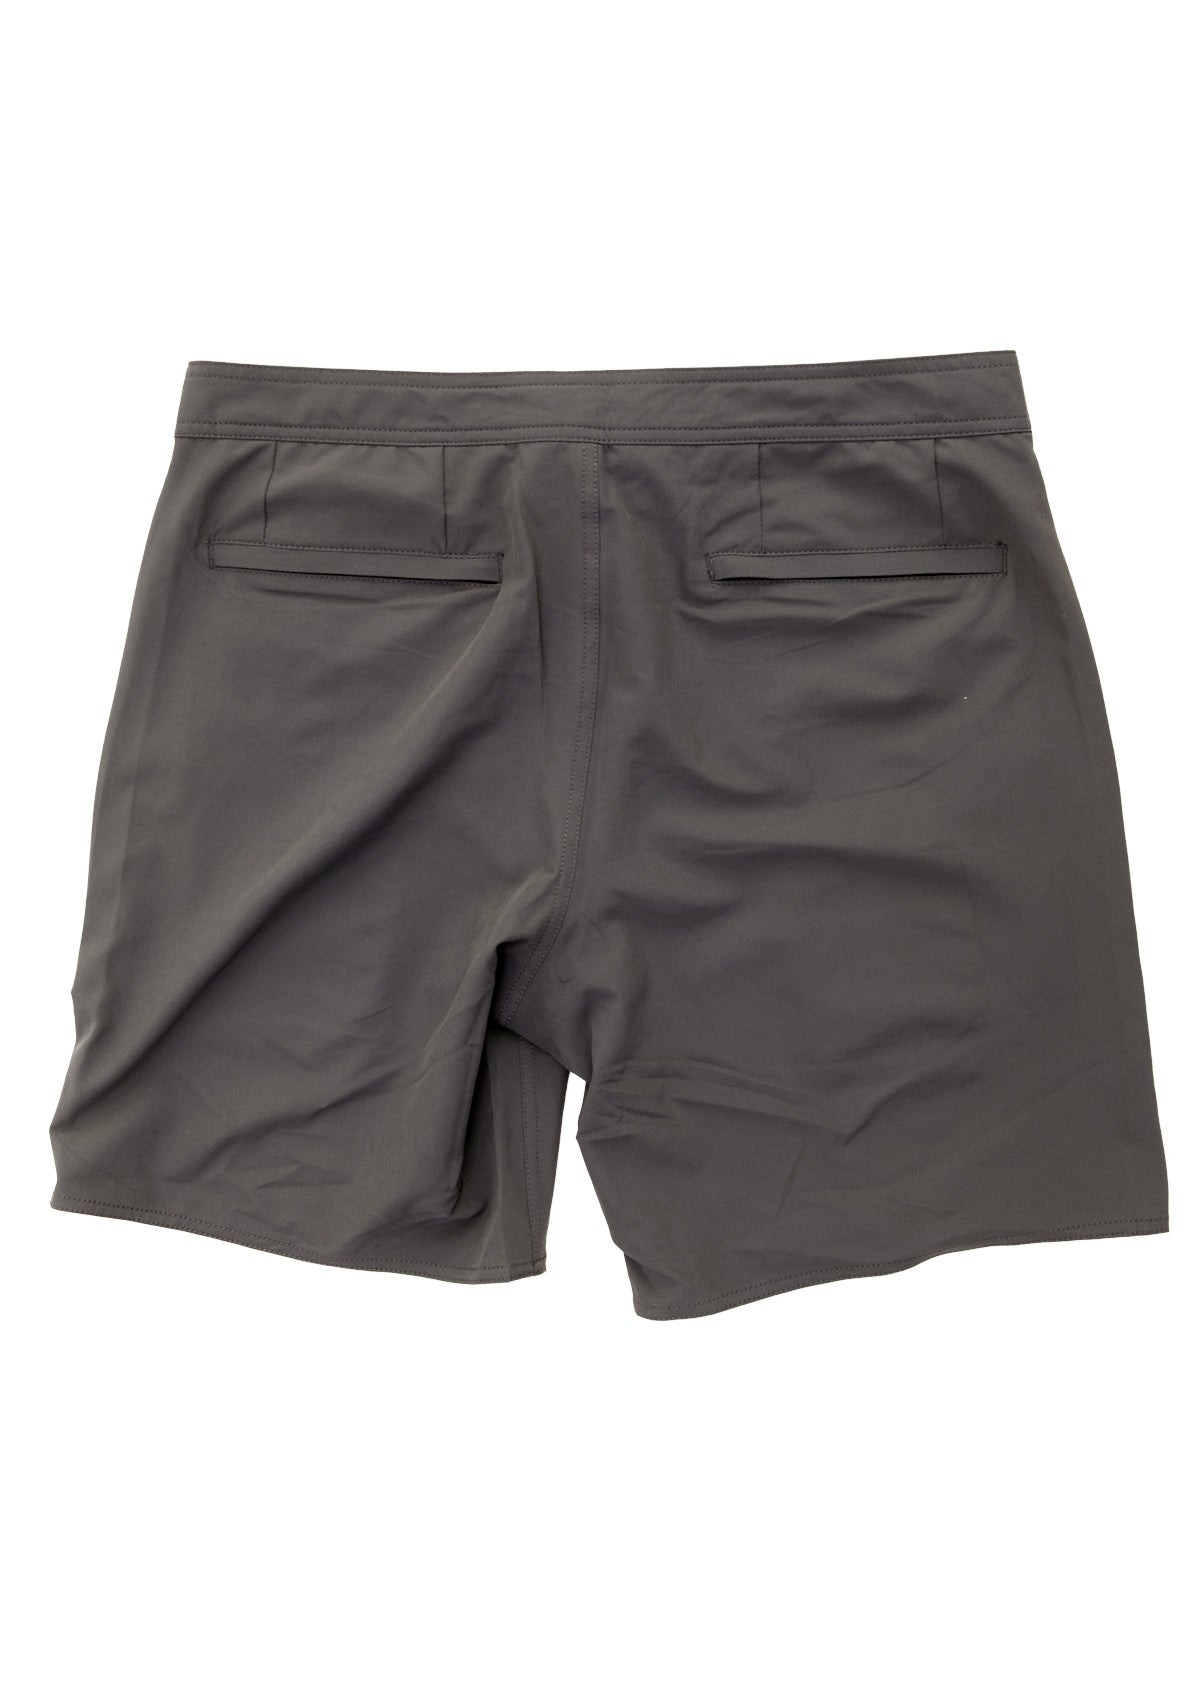 needessentials all-rounder mens surfing boardshorts non branded dark grey swimming